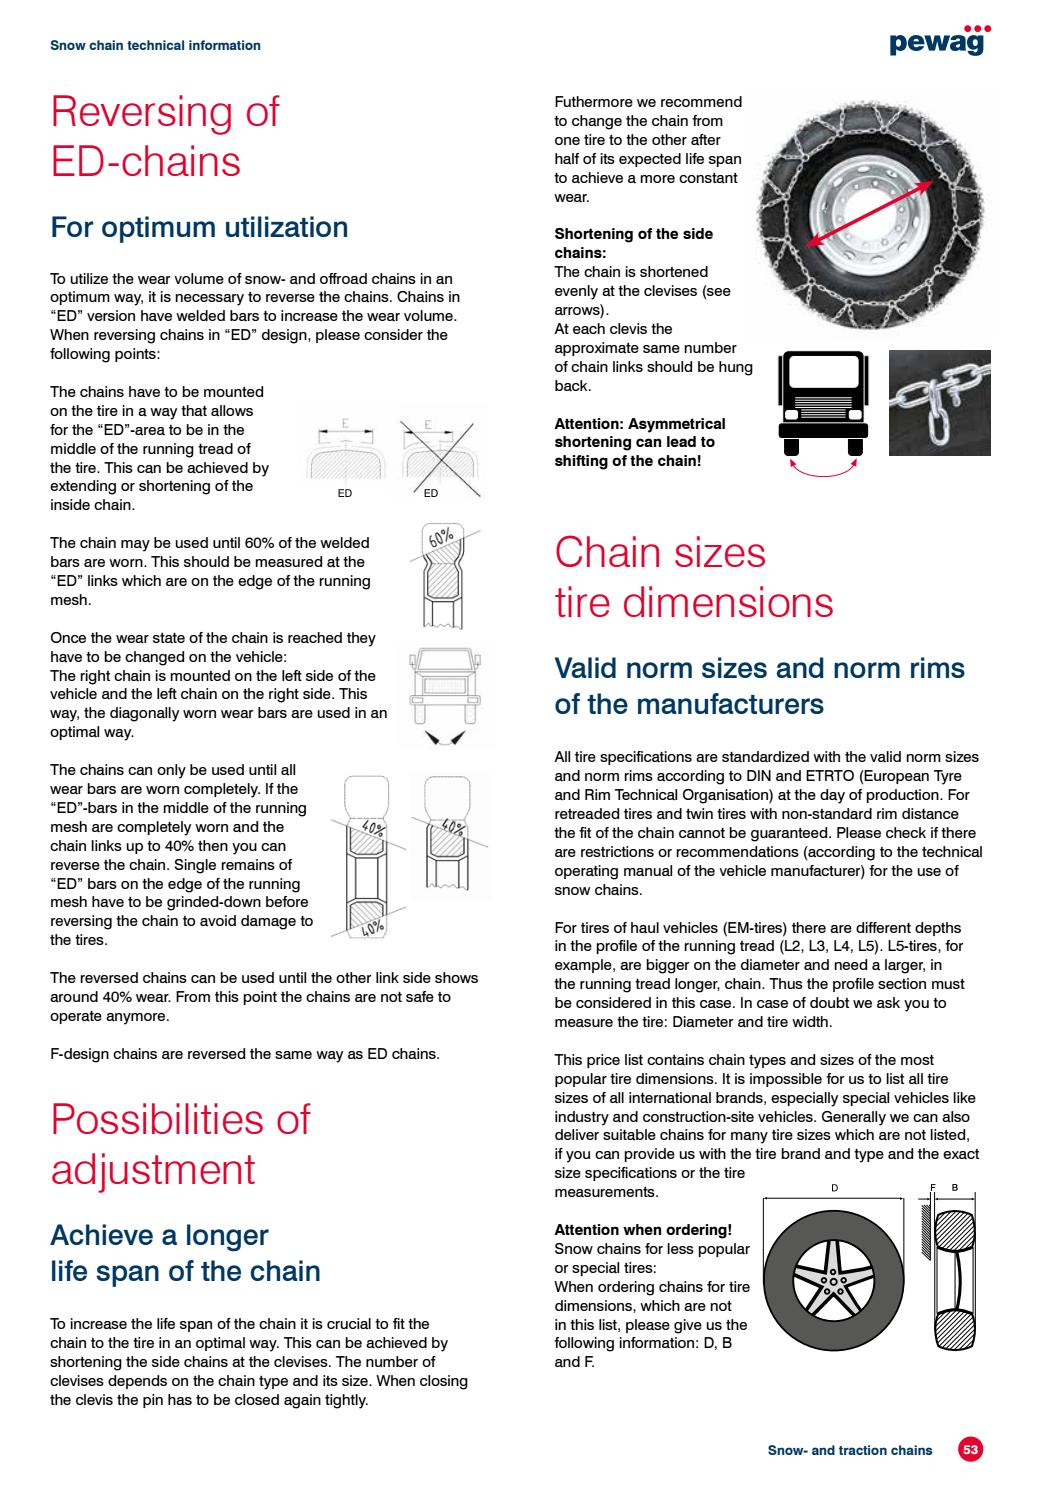 Snow- and traction chains - catalog by pewag - issuu